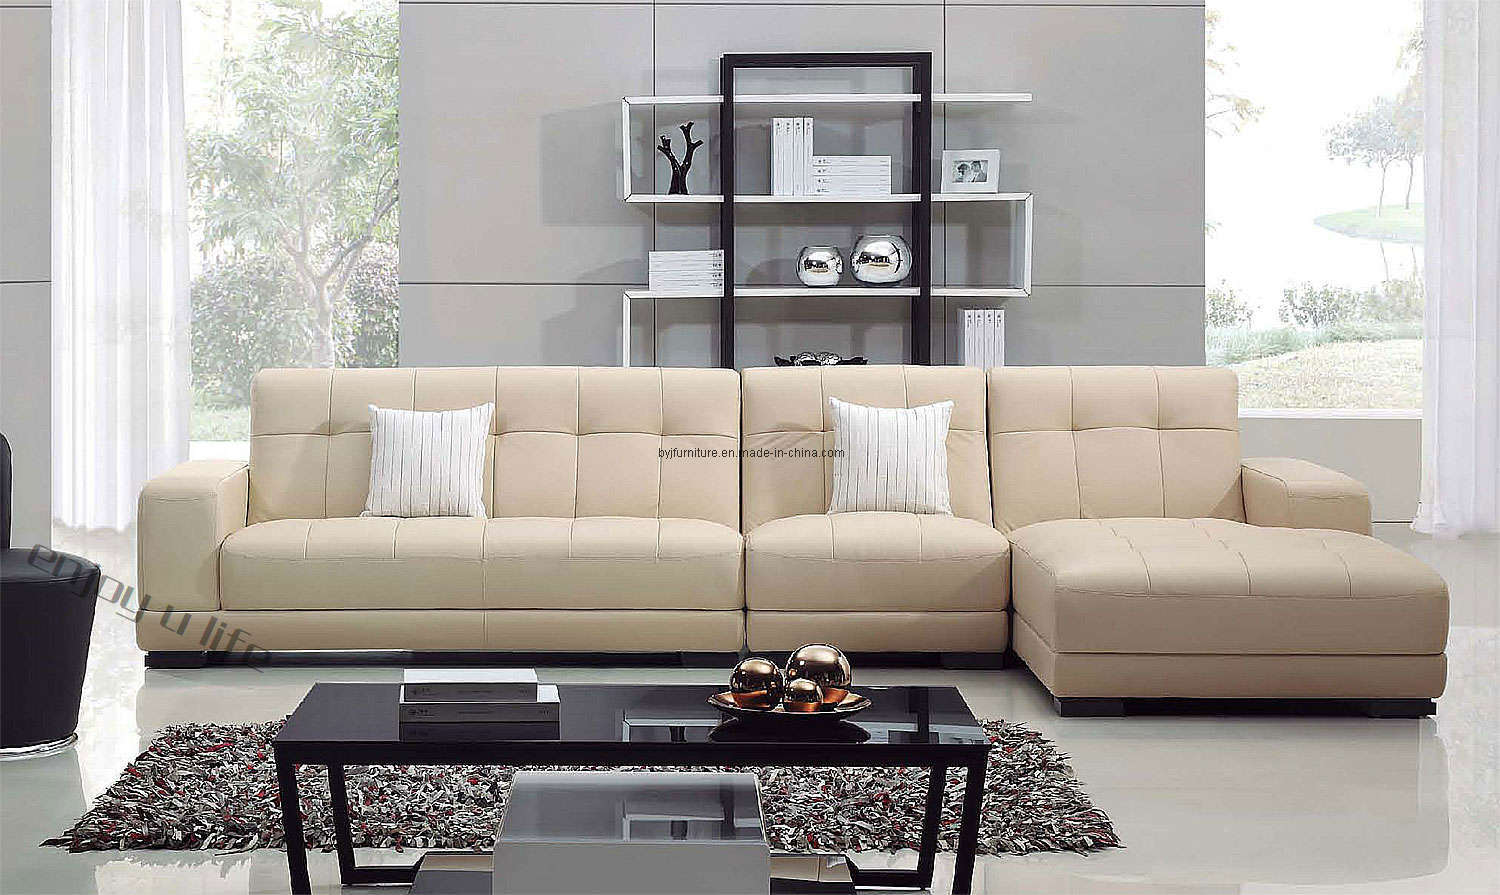 Living Room Modern Sofa Of Sofas For Living Room 2017 Grasscloth Wallpaper